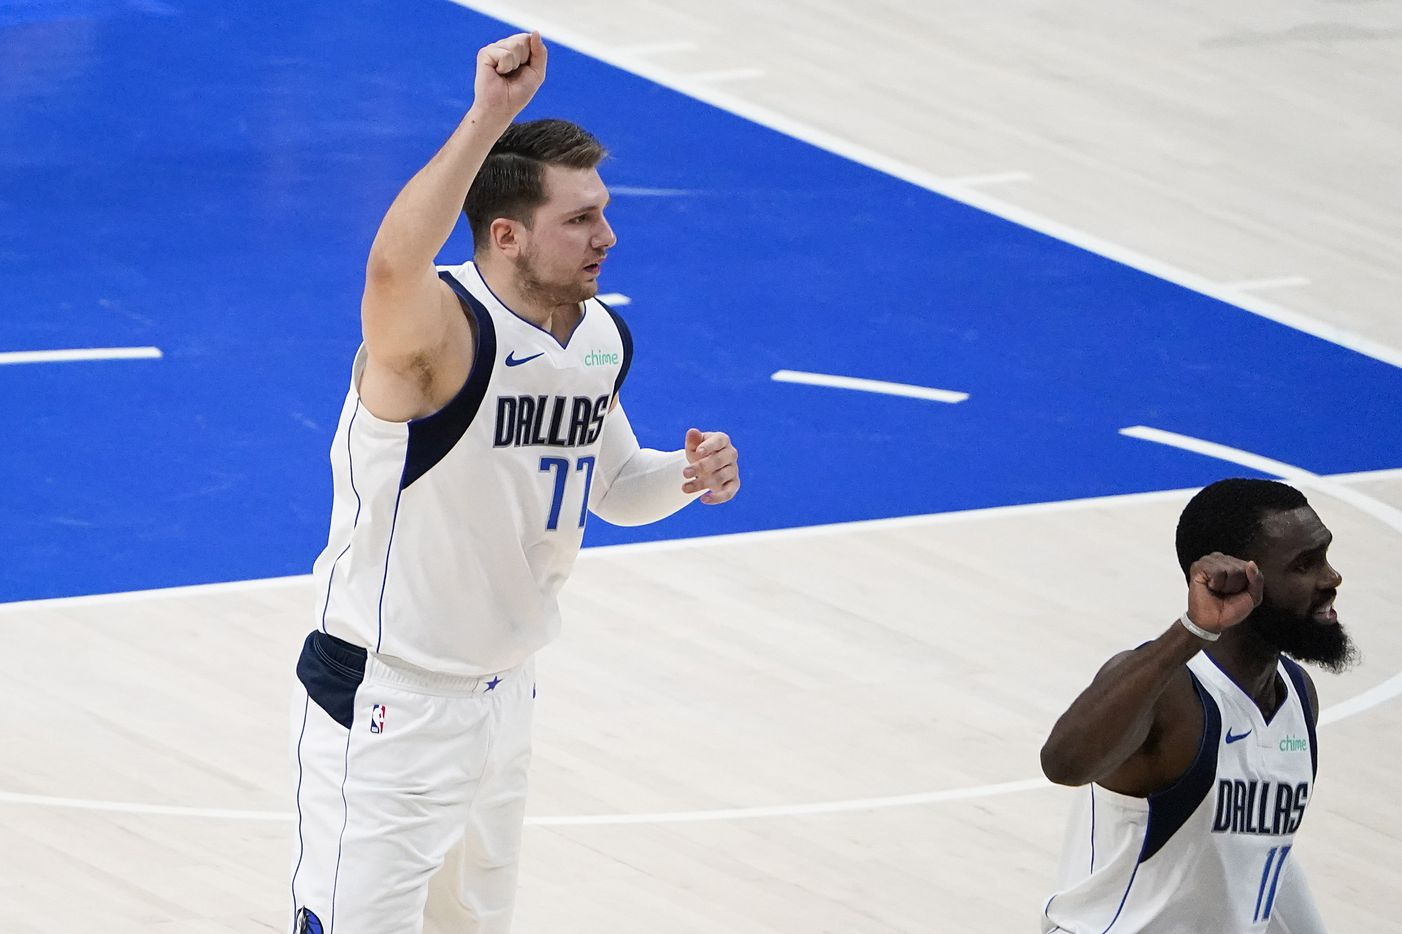 Dallas Mavericks guard Luka Doncic (77) celebrates a basket by forward Tim Hardaway Jr. (11) during the first quarter of an NBA playoff basketball game against the LA Clippers at American Airlines Center on Sunday, May 30, 2021, in Dallas.